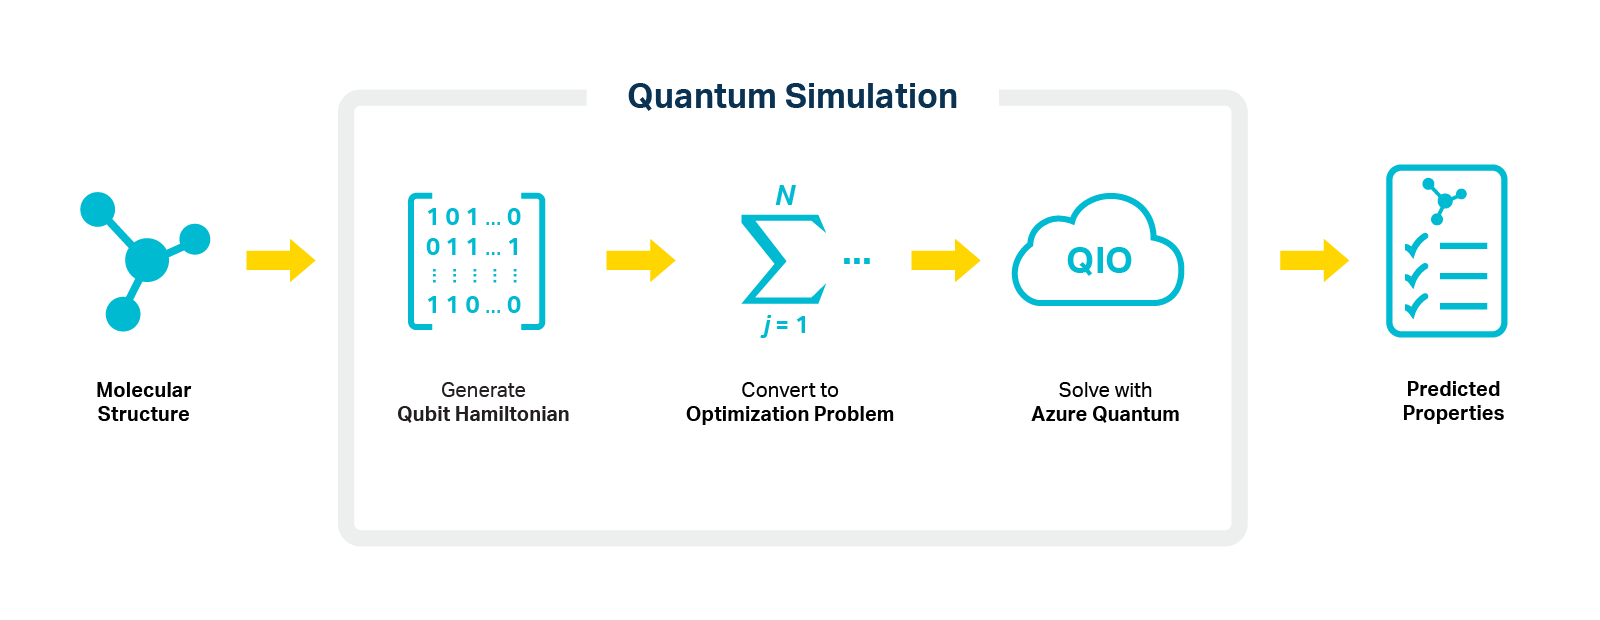 quantum simulation diagram